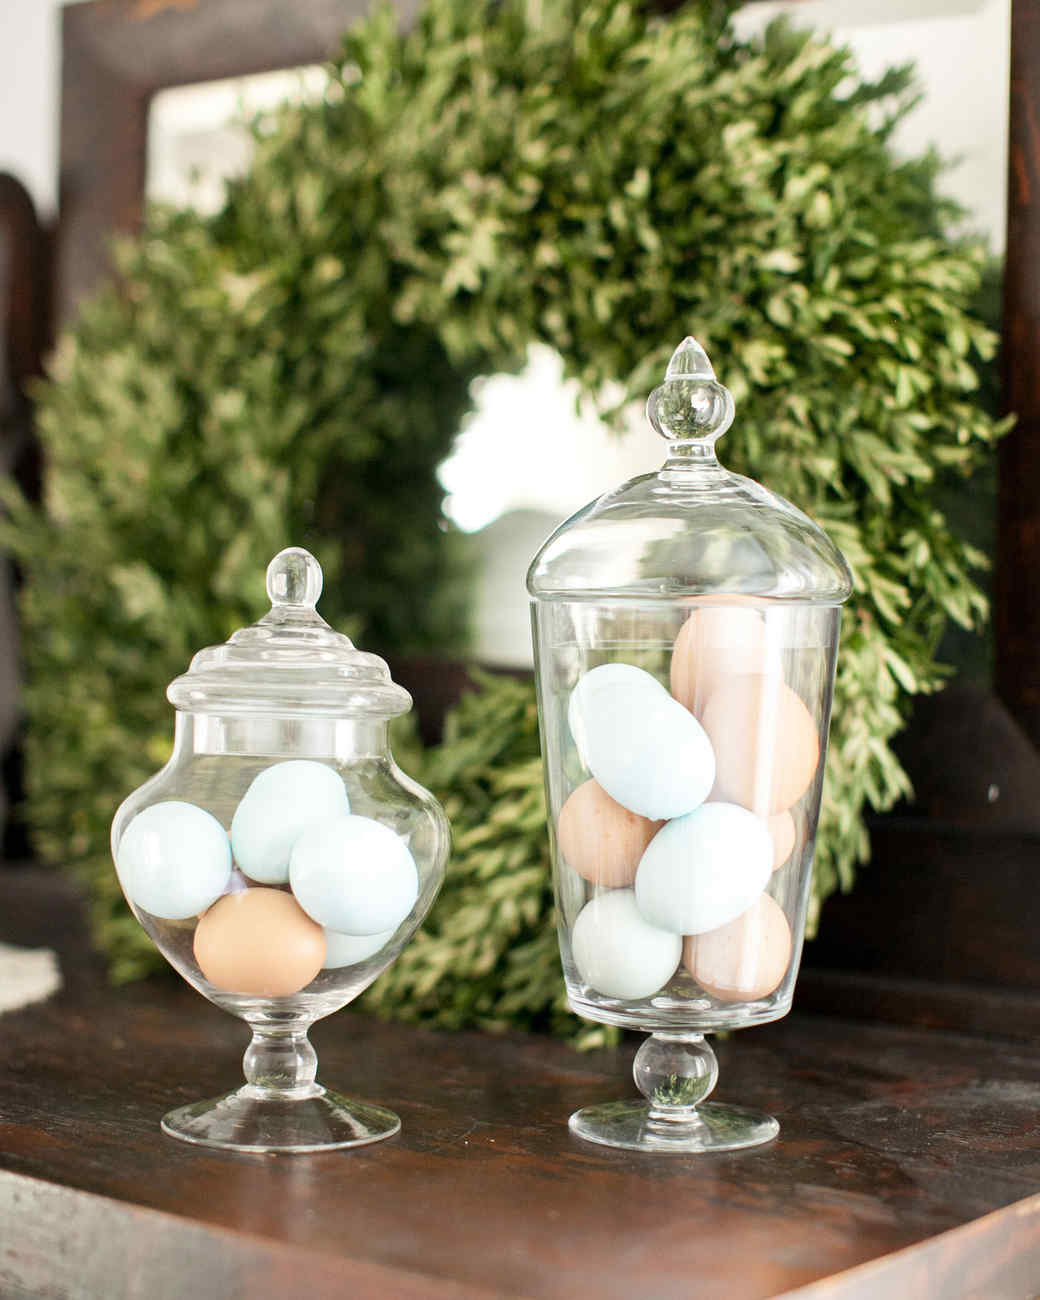 eggs-in-apothecary.jpg